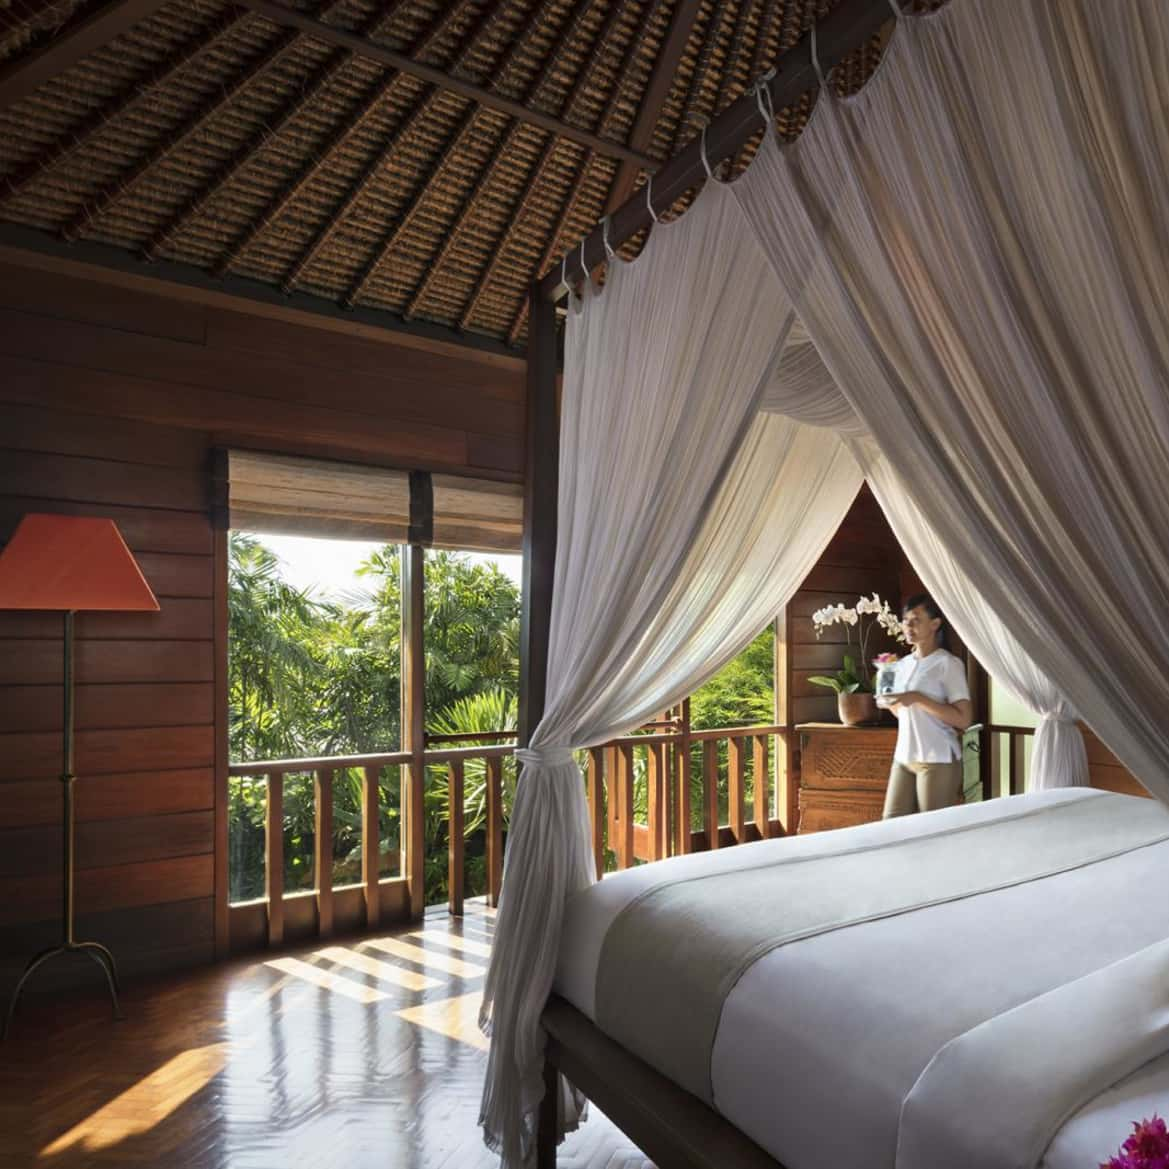 Recharge in Bali - The Pavilions Bali